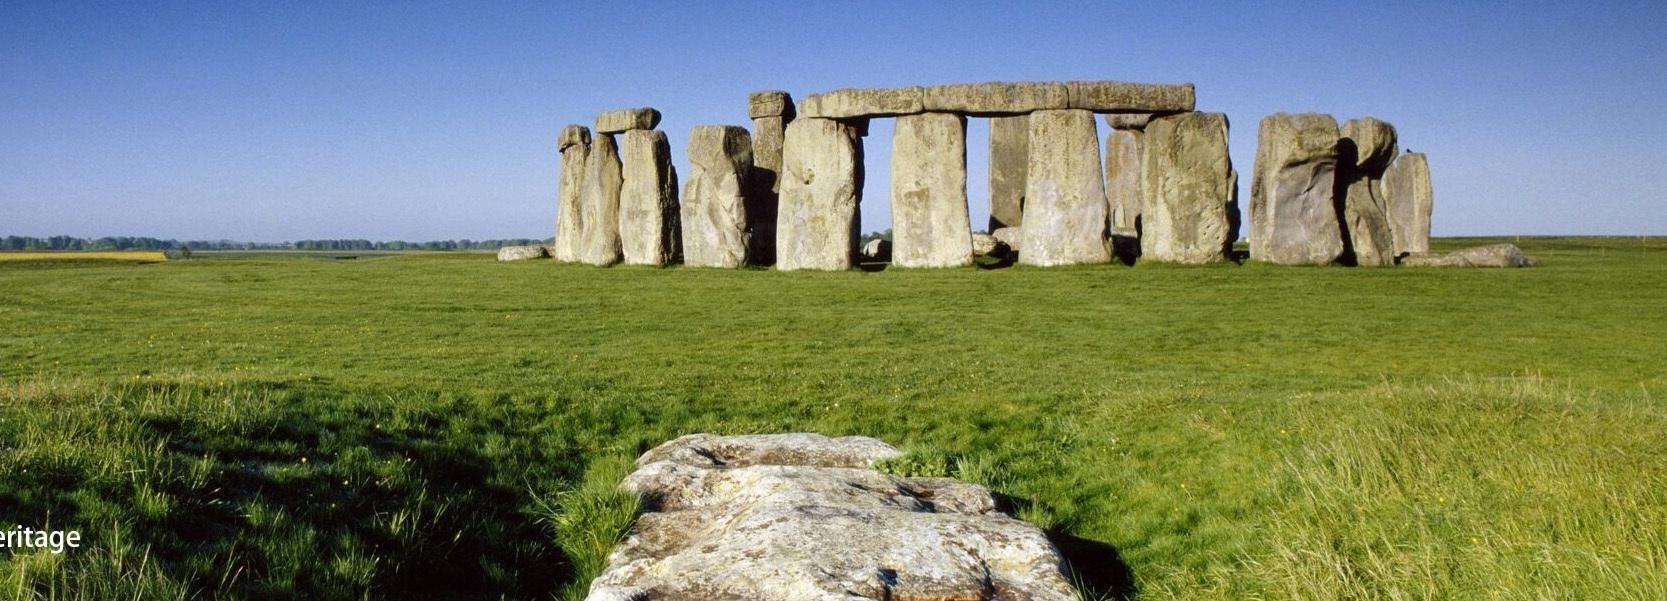 Small Group Fully Guided Tour of Stonehenge, Windsor & Bath